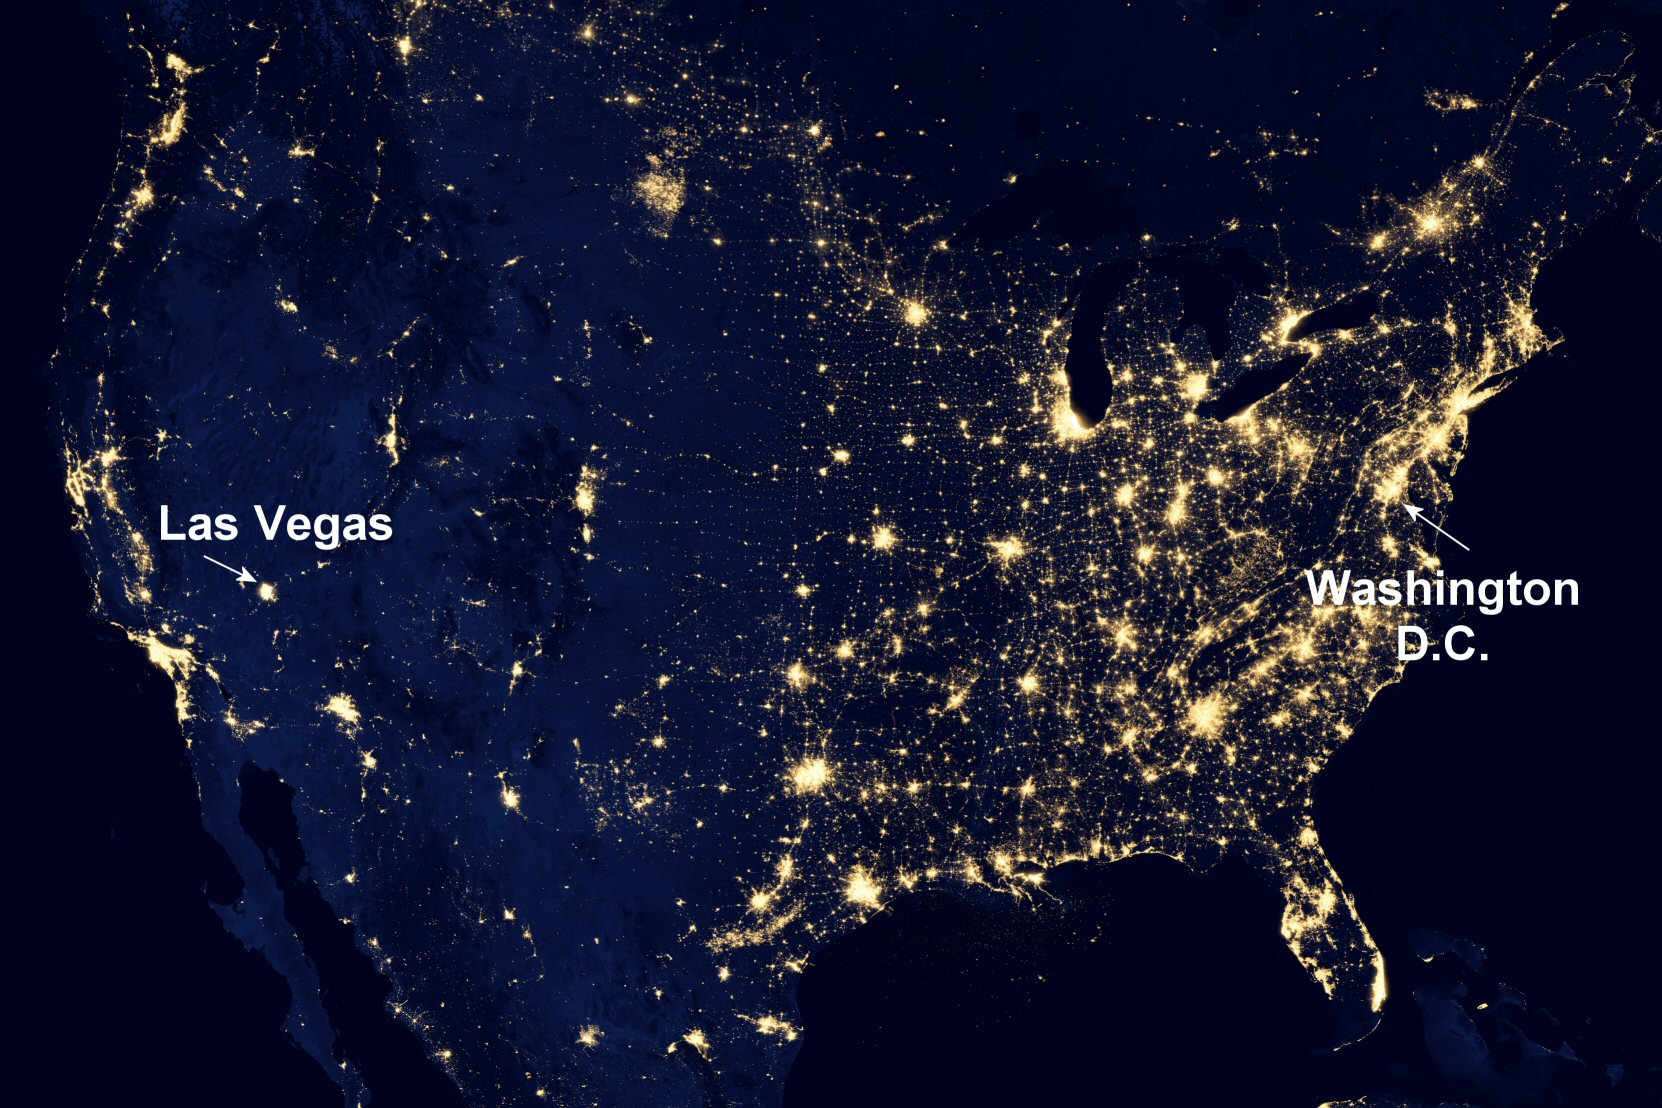 "NASA image acquired April 18 - October 23, 2012 This image of the United States of America at night is a composite assembled from data acquired by the Suomi NPP satellite in April and October 2012. The image was made possible by the new satellite's ""day-night band"" of the Visible Infrared Imaging Radiometer Suite (VIIRS), which detects light in a range of wavelengths from green to near-infrared and uses filtering techniques to observe dim signals such as city lights, gas flares, auroras, wildfires, and reflected moonlight. ""Nighttime light is the most interesting data that I've had a chance to work with,"" says Chris Elvidge, who leads the Earth Observation Group at NOAA's National Geophysical Data Center. ""I'm always amazed at what city light images show us about human activity."" His research group has been approached by scientists seeking to model the distribution of carbon dioxide emissions from fossil fuels and to monitor the activity of commercial fishing fleets. Biologists have examined how urban growth has fragmented animal habitat. Elvidge even learned once of a study of dictatorships in various parts of the world and how nighttime lights had a tendency to expand in the dictator's hometown or province. Named for satellite meteorology pioneer Verner Suomi, NPP flies over any given point on Earth's surface twice each day at roughly 1:30 a.m. and p.m. The polar-orbiting satellite flies 824 kilometers (512 miles) above the surface, sending its data once per orbit to a ground station in Svalbard, Norway, and continuously to local direct broadcast users distributed around the world. Suomi NPP is managed by NASA with operational support from NOAA and its Joint Polar Satellite System, which manages the satellite's ground system. NASA Earth Observatory image by Robert Simmon, using Suomi NPP VIIRS data provided courtesy of Chris Elvidge (NOAA National Geophysical Data Center). Suomi NPP is the result of a partnership between NASA, NOAA, and the Department of Defense. Caption by Mike Carlowicz. Instrument: Suomi NPP - VIIRS Credit: NASA Earth Observatory Click here to view all of the  Earth at Night 2012 images  Click here to  read more  about this image   NASA image use policy. NASA Goddard Space Flight Center enables NASA's mission through four scientific endeavors: Earth Science, Heliophysics, Solar System Exploration, and Astrophysics. Goddard plays a leading role in NASA's accomplishments by contributing compelling scientific knowledge to advance the Agency's mission. Follow us on Twitter Like us on Facebook Find us on Instagram"